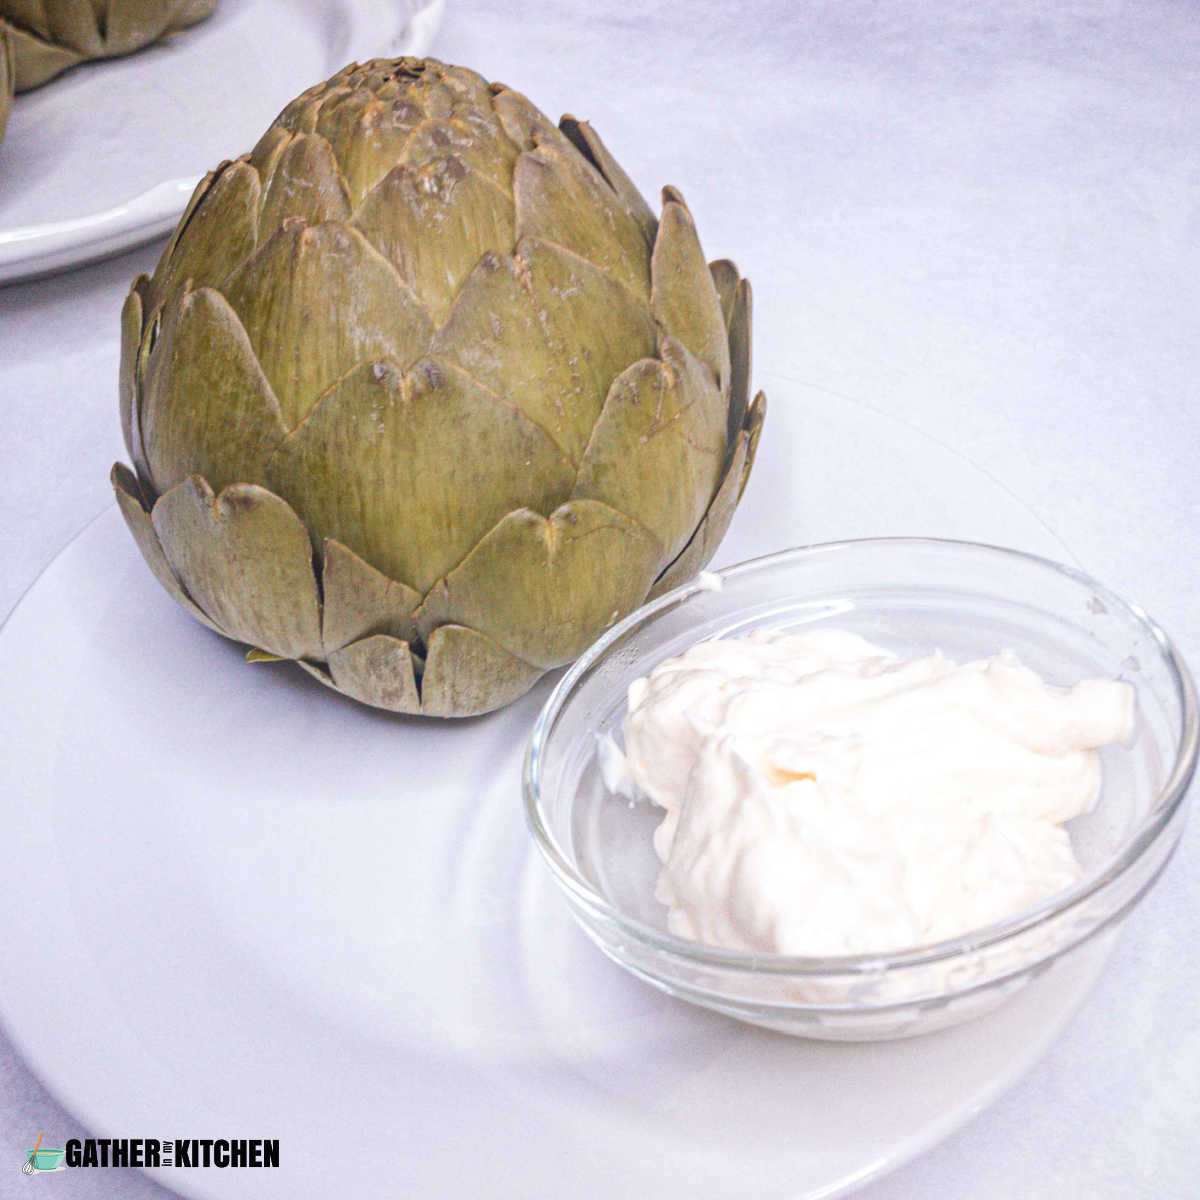 Large artichoke on a plate with a small dish of mayonnaise for dipping.